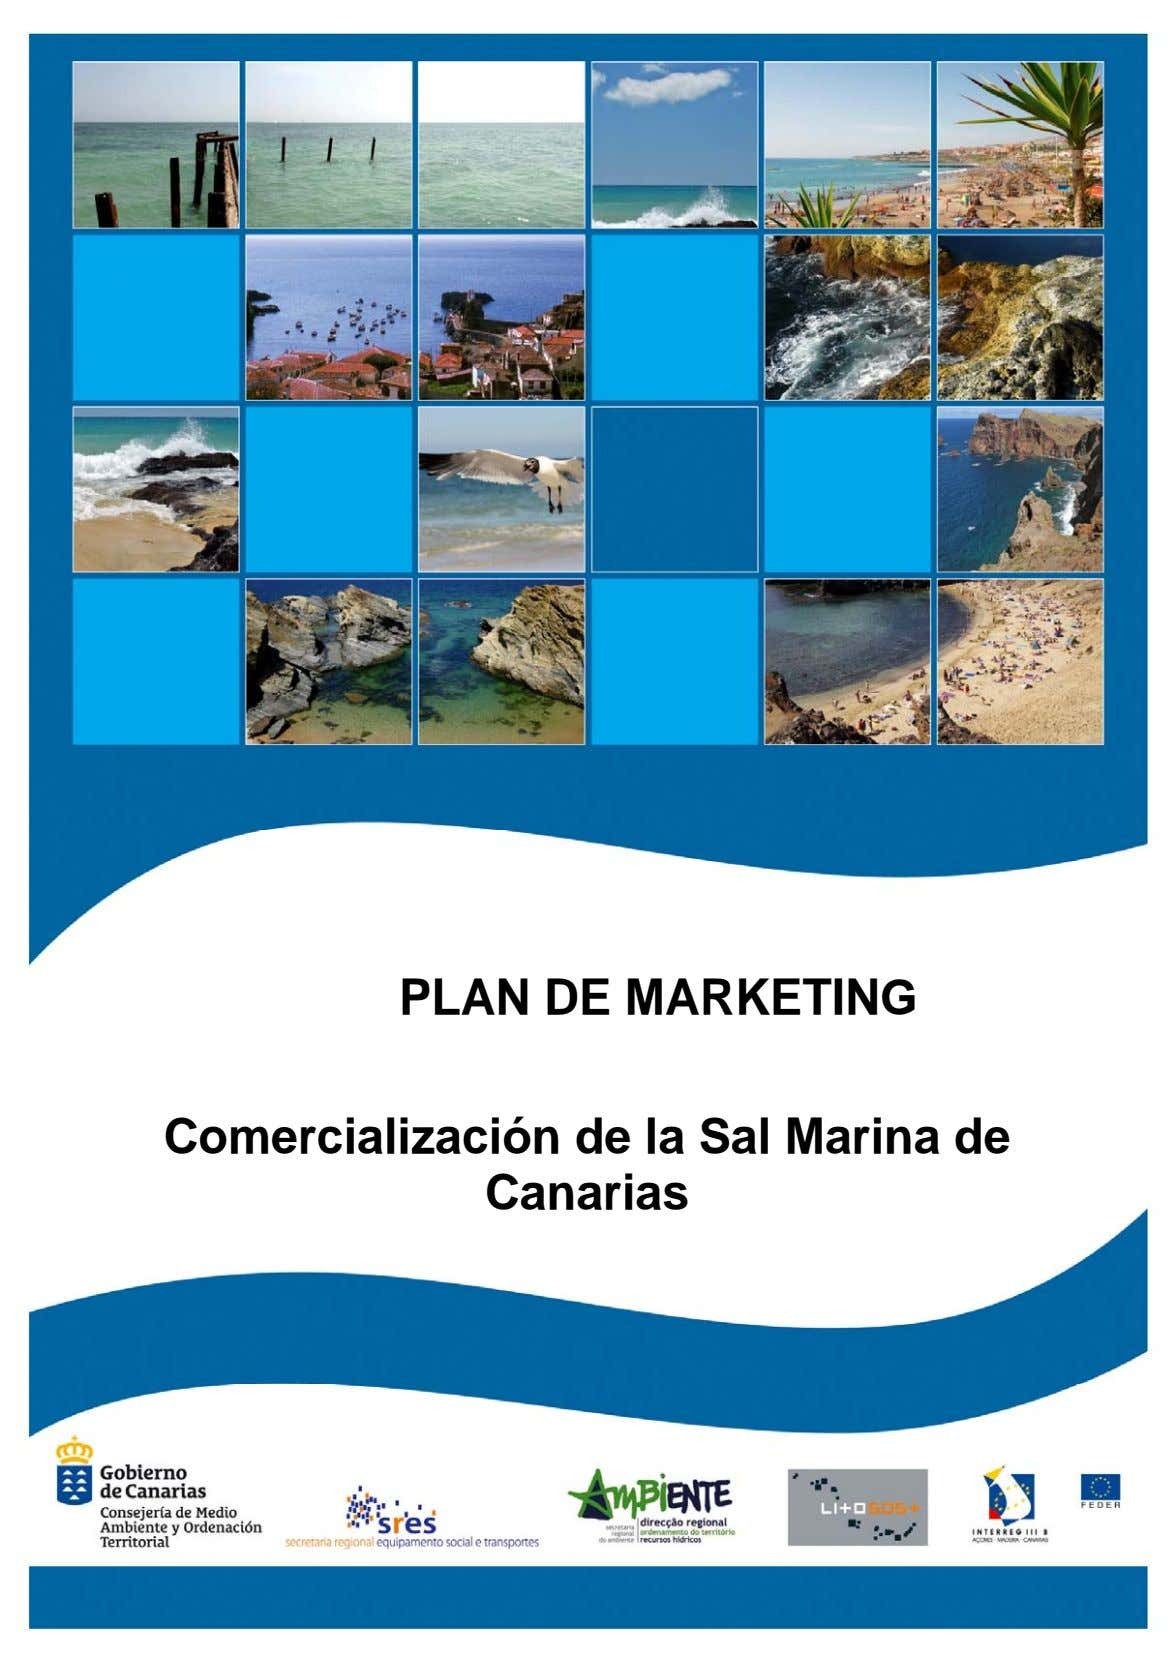 PLAN DE MARKETING Comercialización de la Sal Marina de Canarias